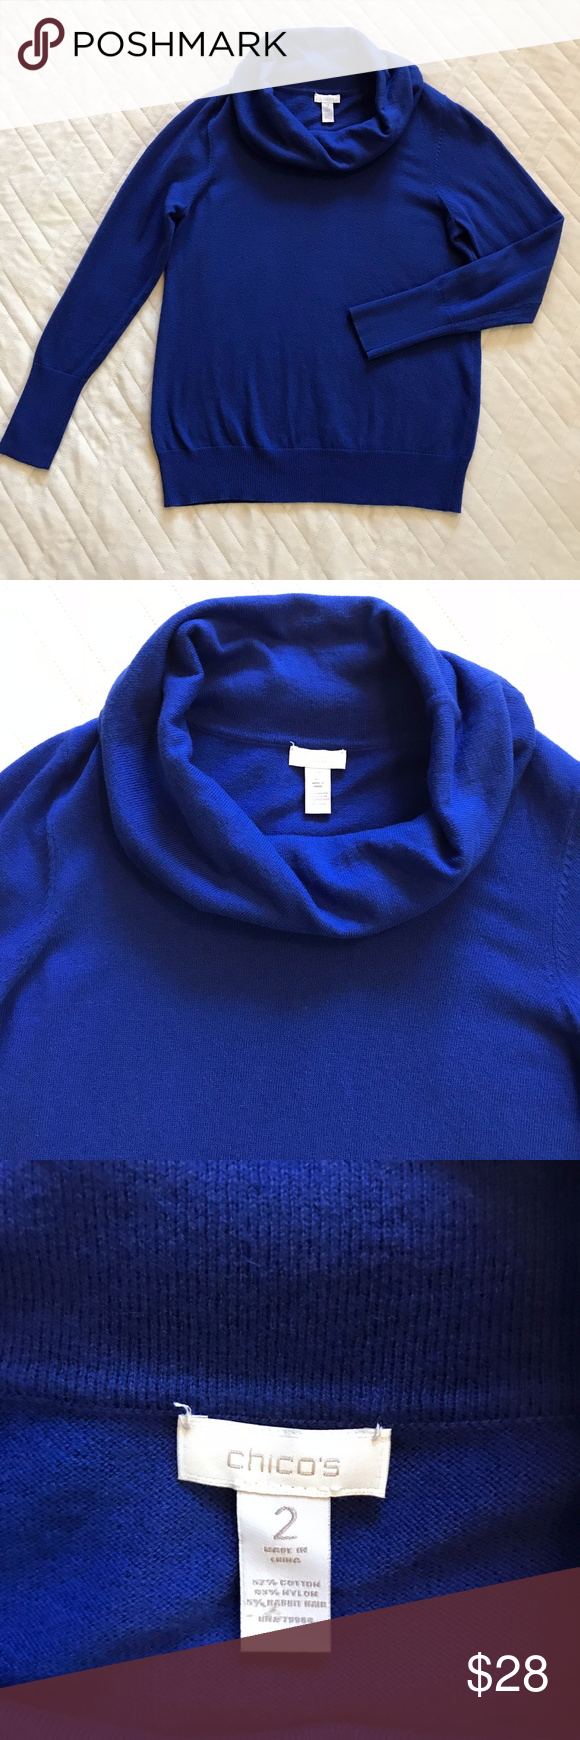 Chico's Royal Blue Cowl-Neck Sweater 2 Large | Cowl neck, Royal ...